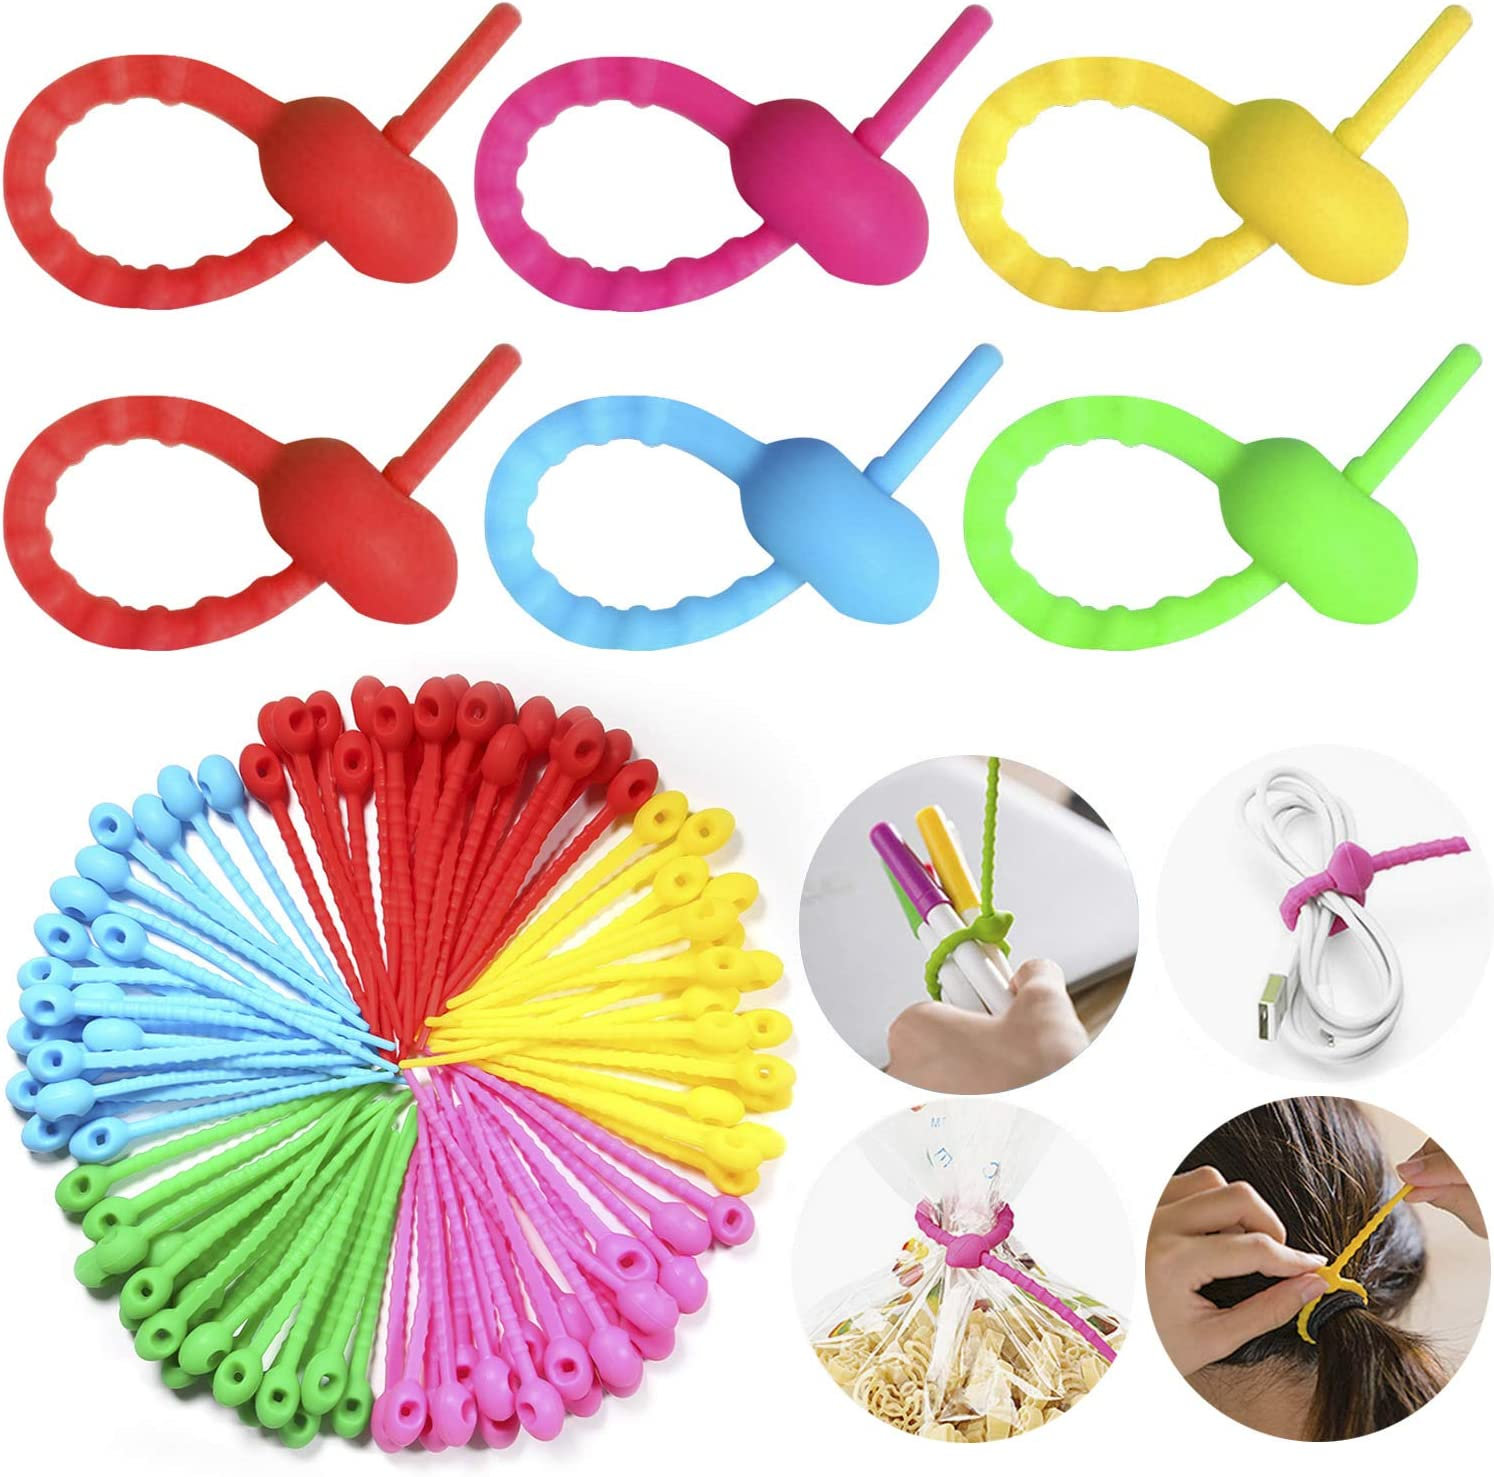 PROLOSO 100 Pcs Silicone Cable Ties Adjustable Rubber Twist Tie Cord Zip Tie Bag Wrap Straps Multi Color for Food Home Kitchen Office